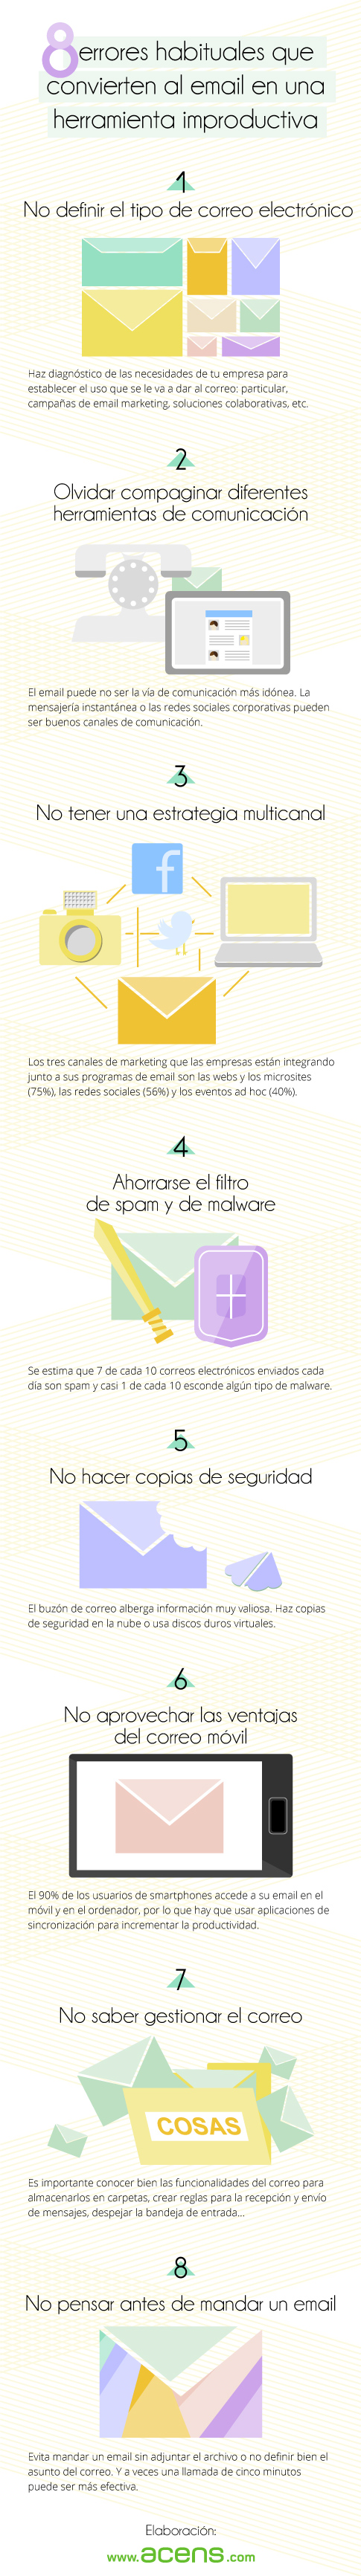 infografia-8-errores-email-blog-acens-cloud.jpg